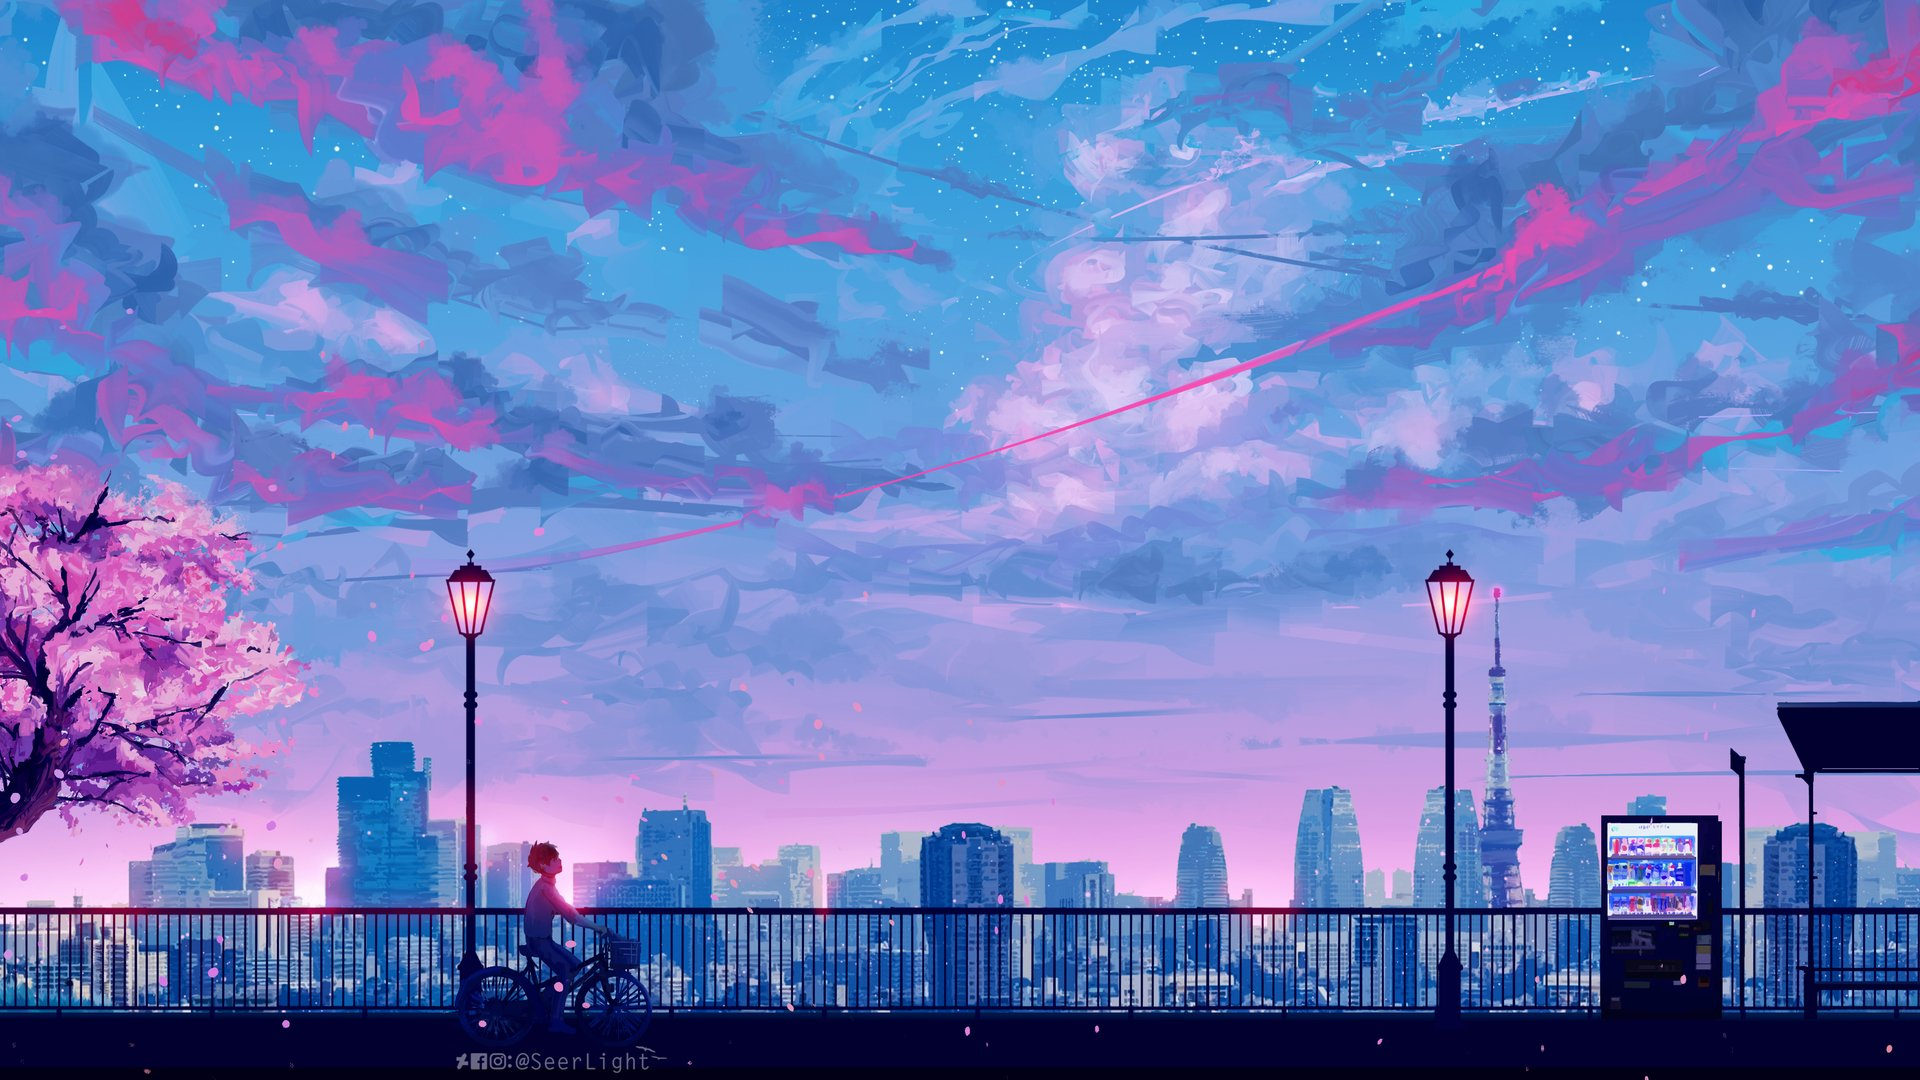 Aesthetic Anime Wallpaper 1920x1080 Hd